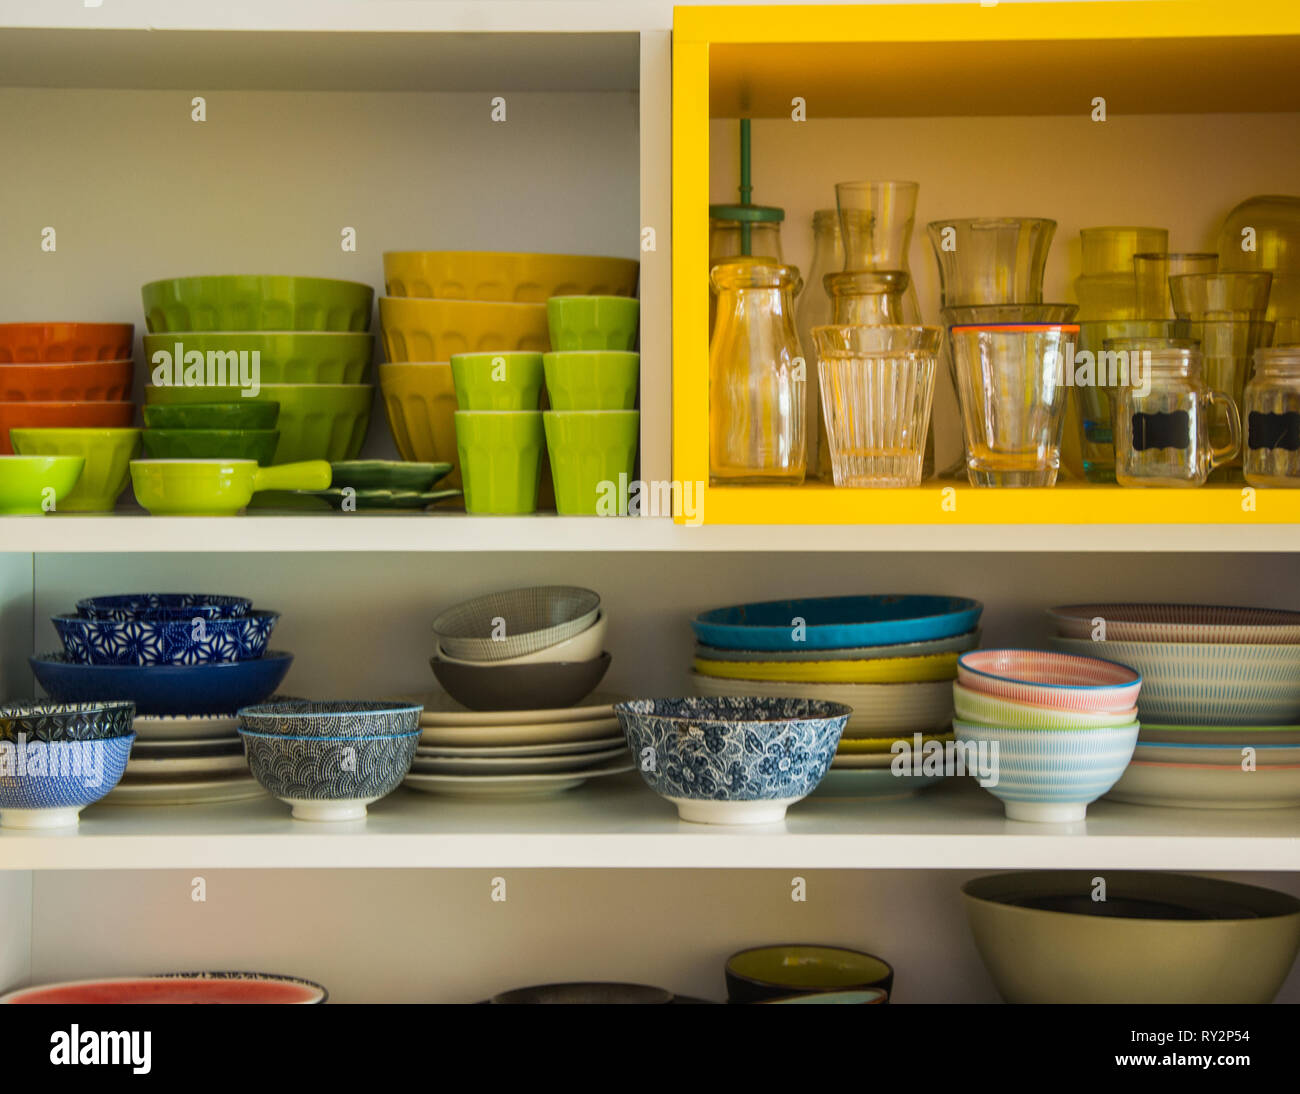 colorful kitchen utensils - Stock Image